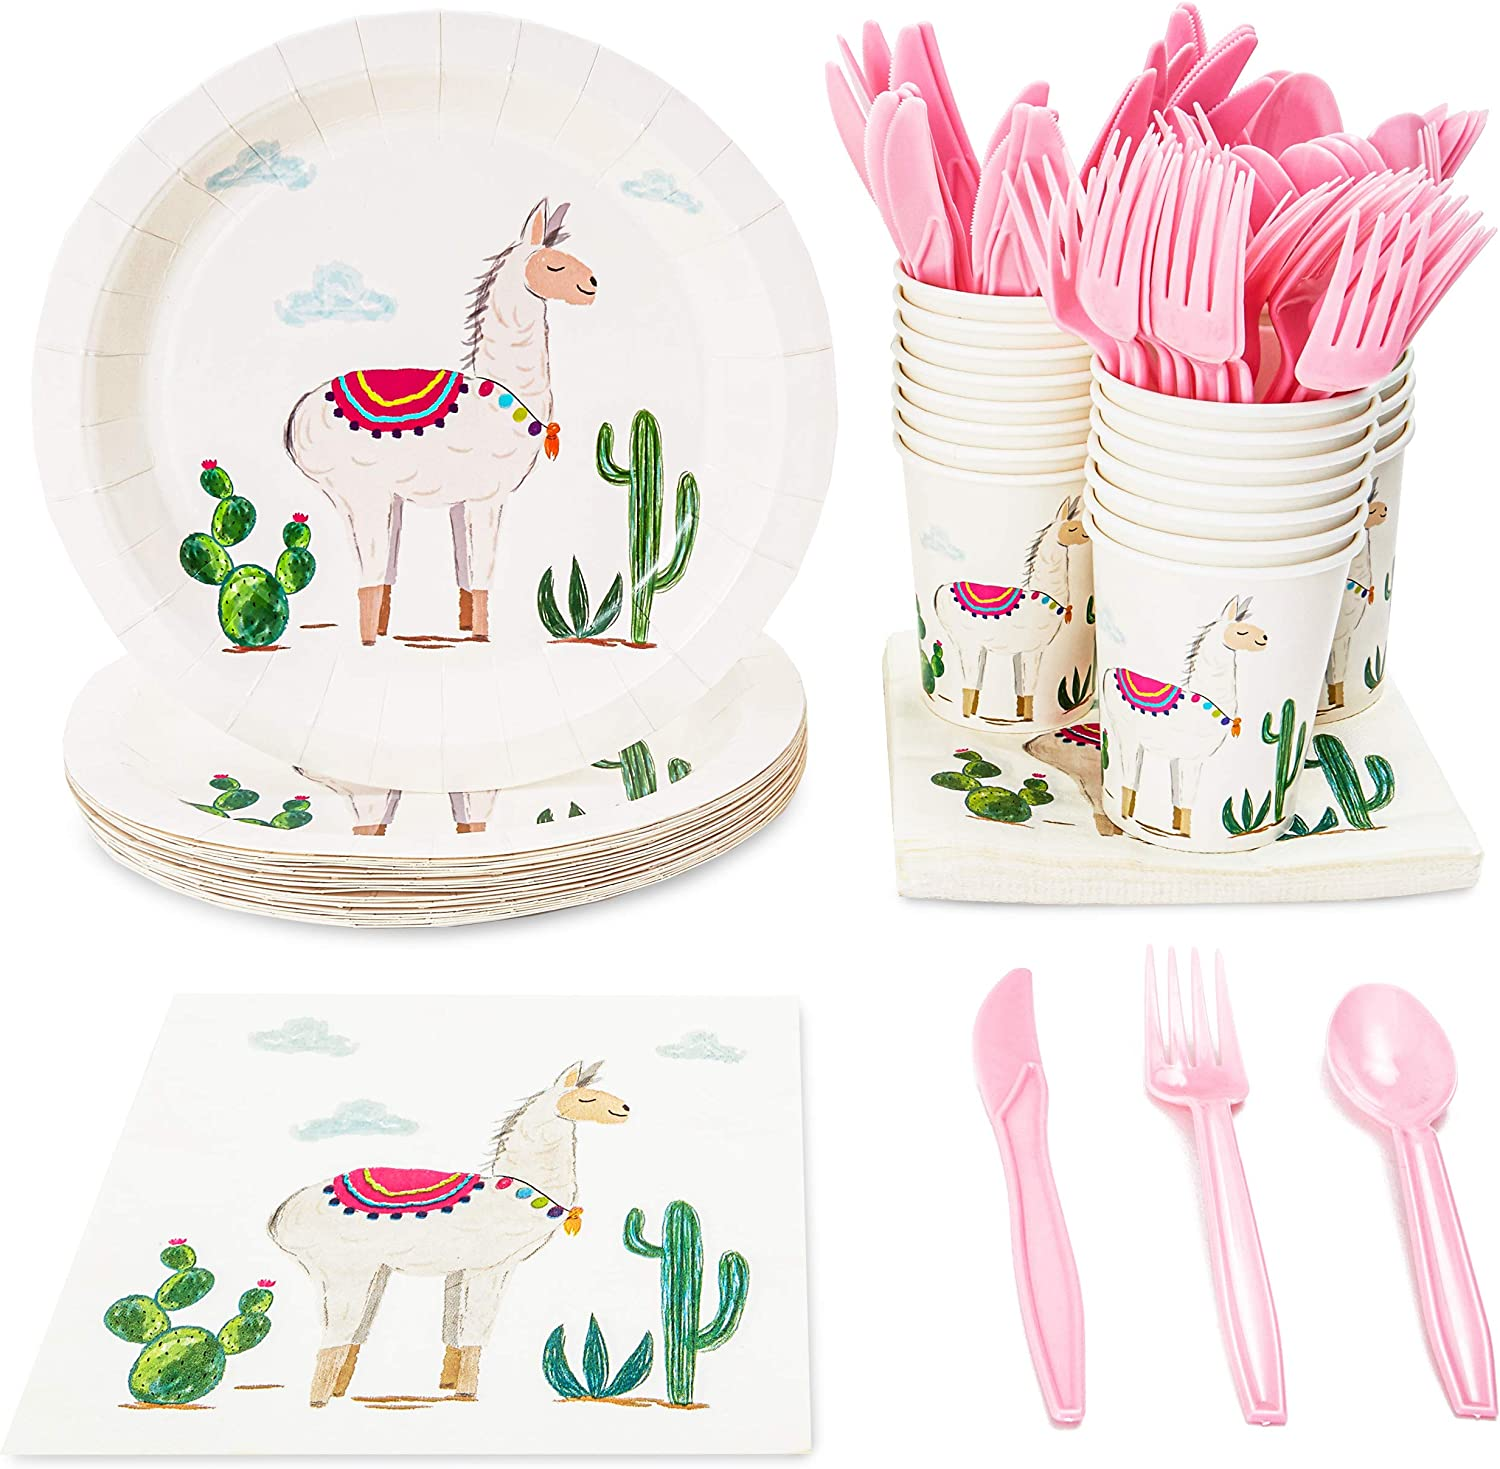 Llama Party Bundle, Includes Plates, Napkins, Cups, and Cutlery (24 Guests,144 Pieces)